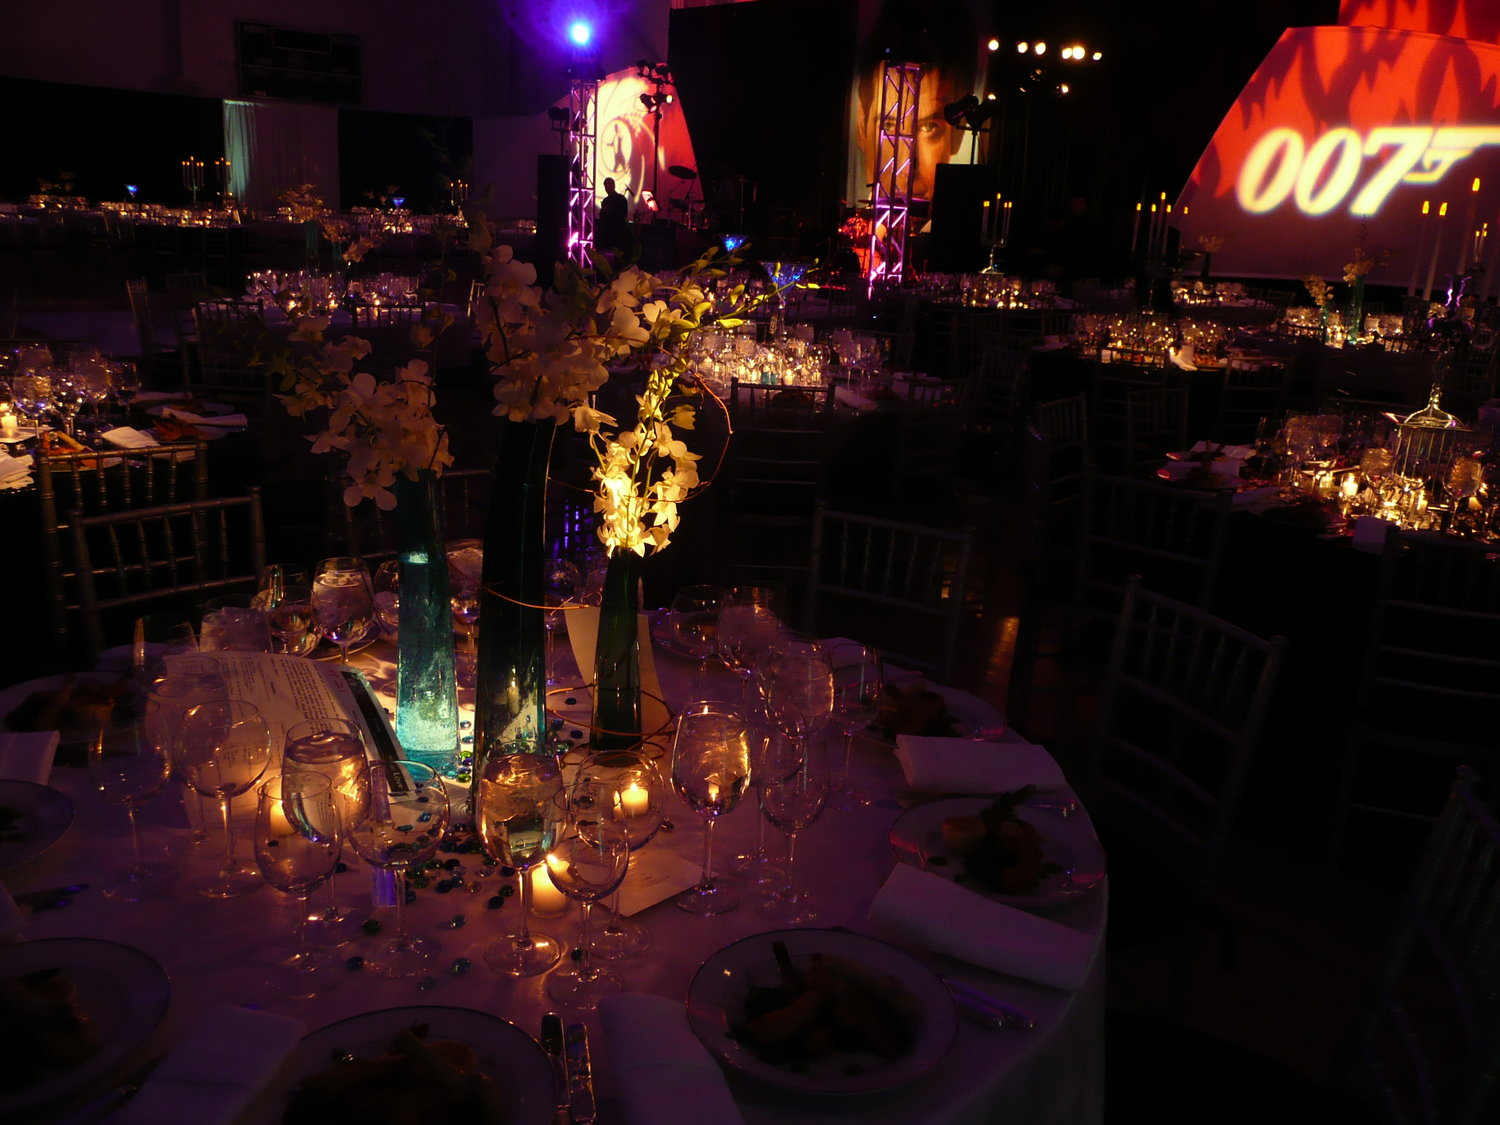 NJ+event+decor+lighting+design+rentals+gala+fundraiser+school+auction.jpg